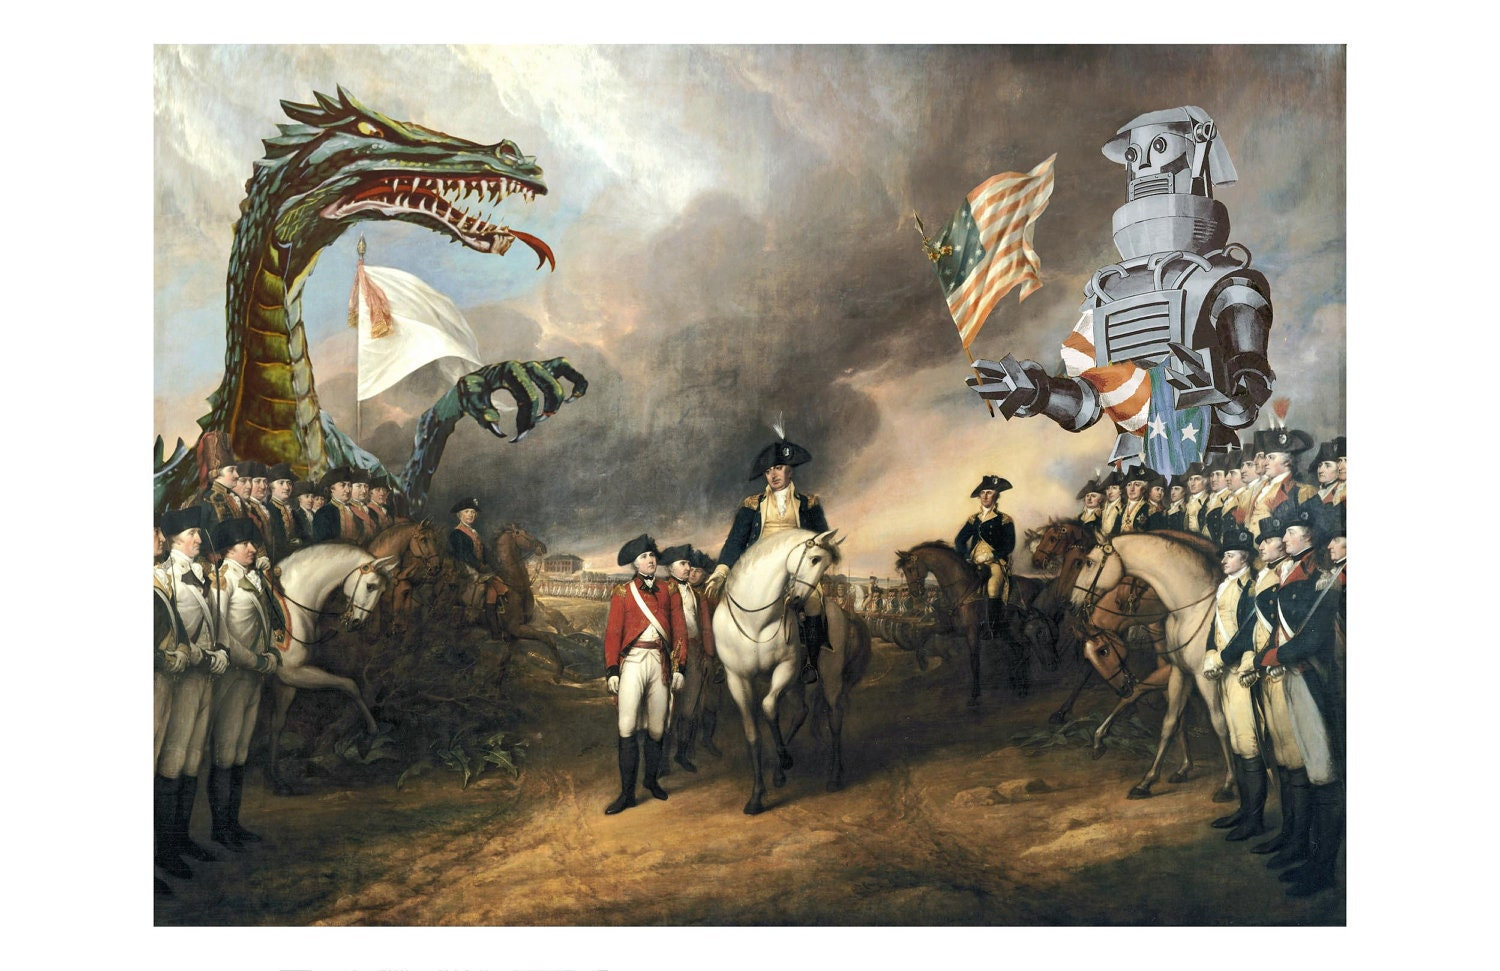 revolutionary war descriptive essay of yorktown How was the battle of yorktown important to the revolutionary war a: the last battle of the american revolutionary war was the battle of yorktown.